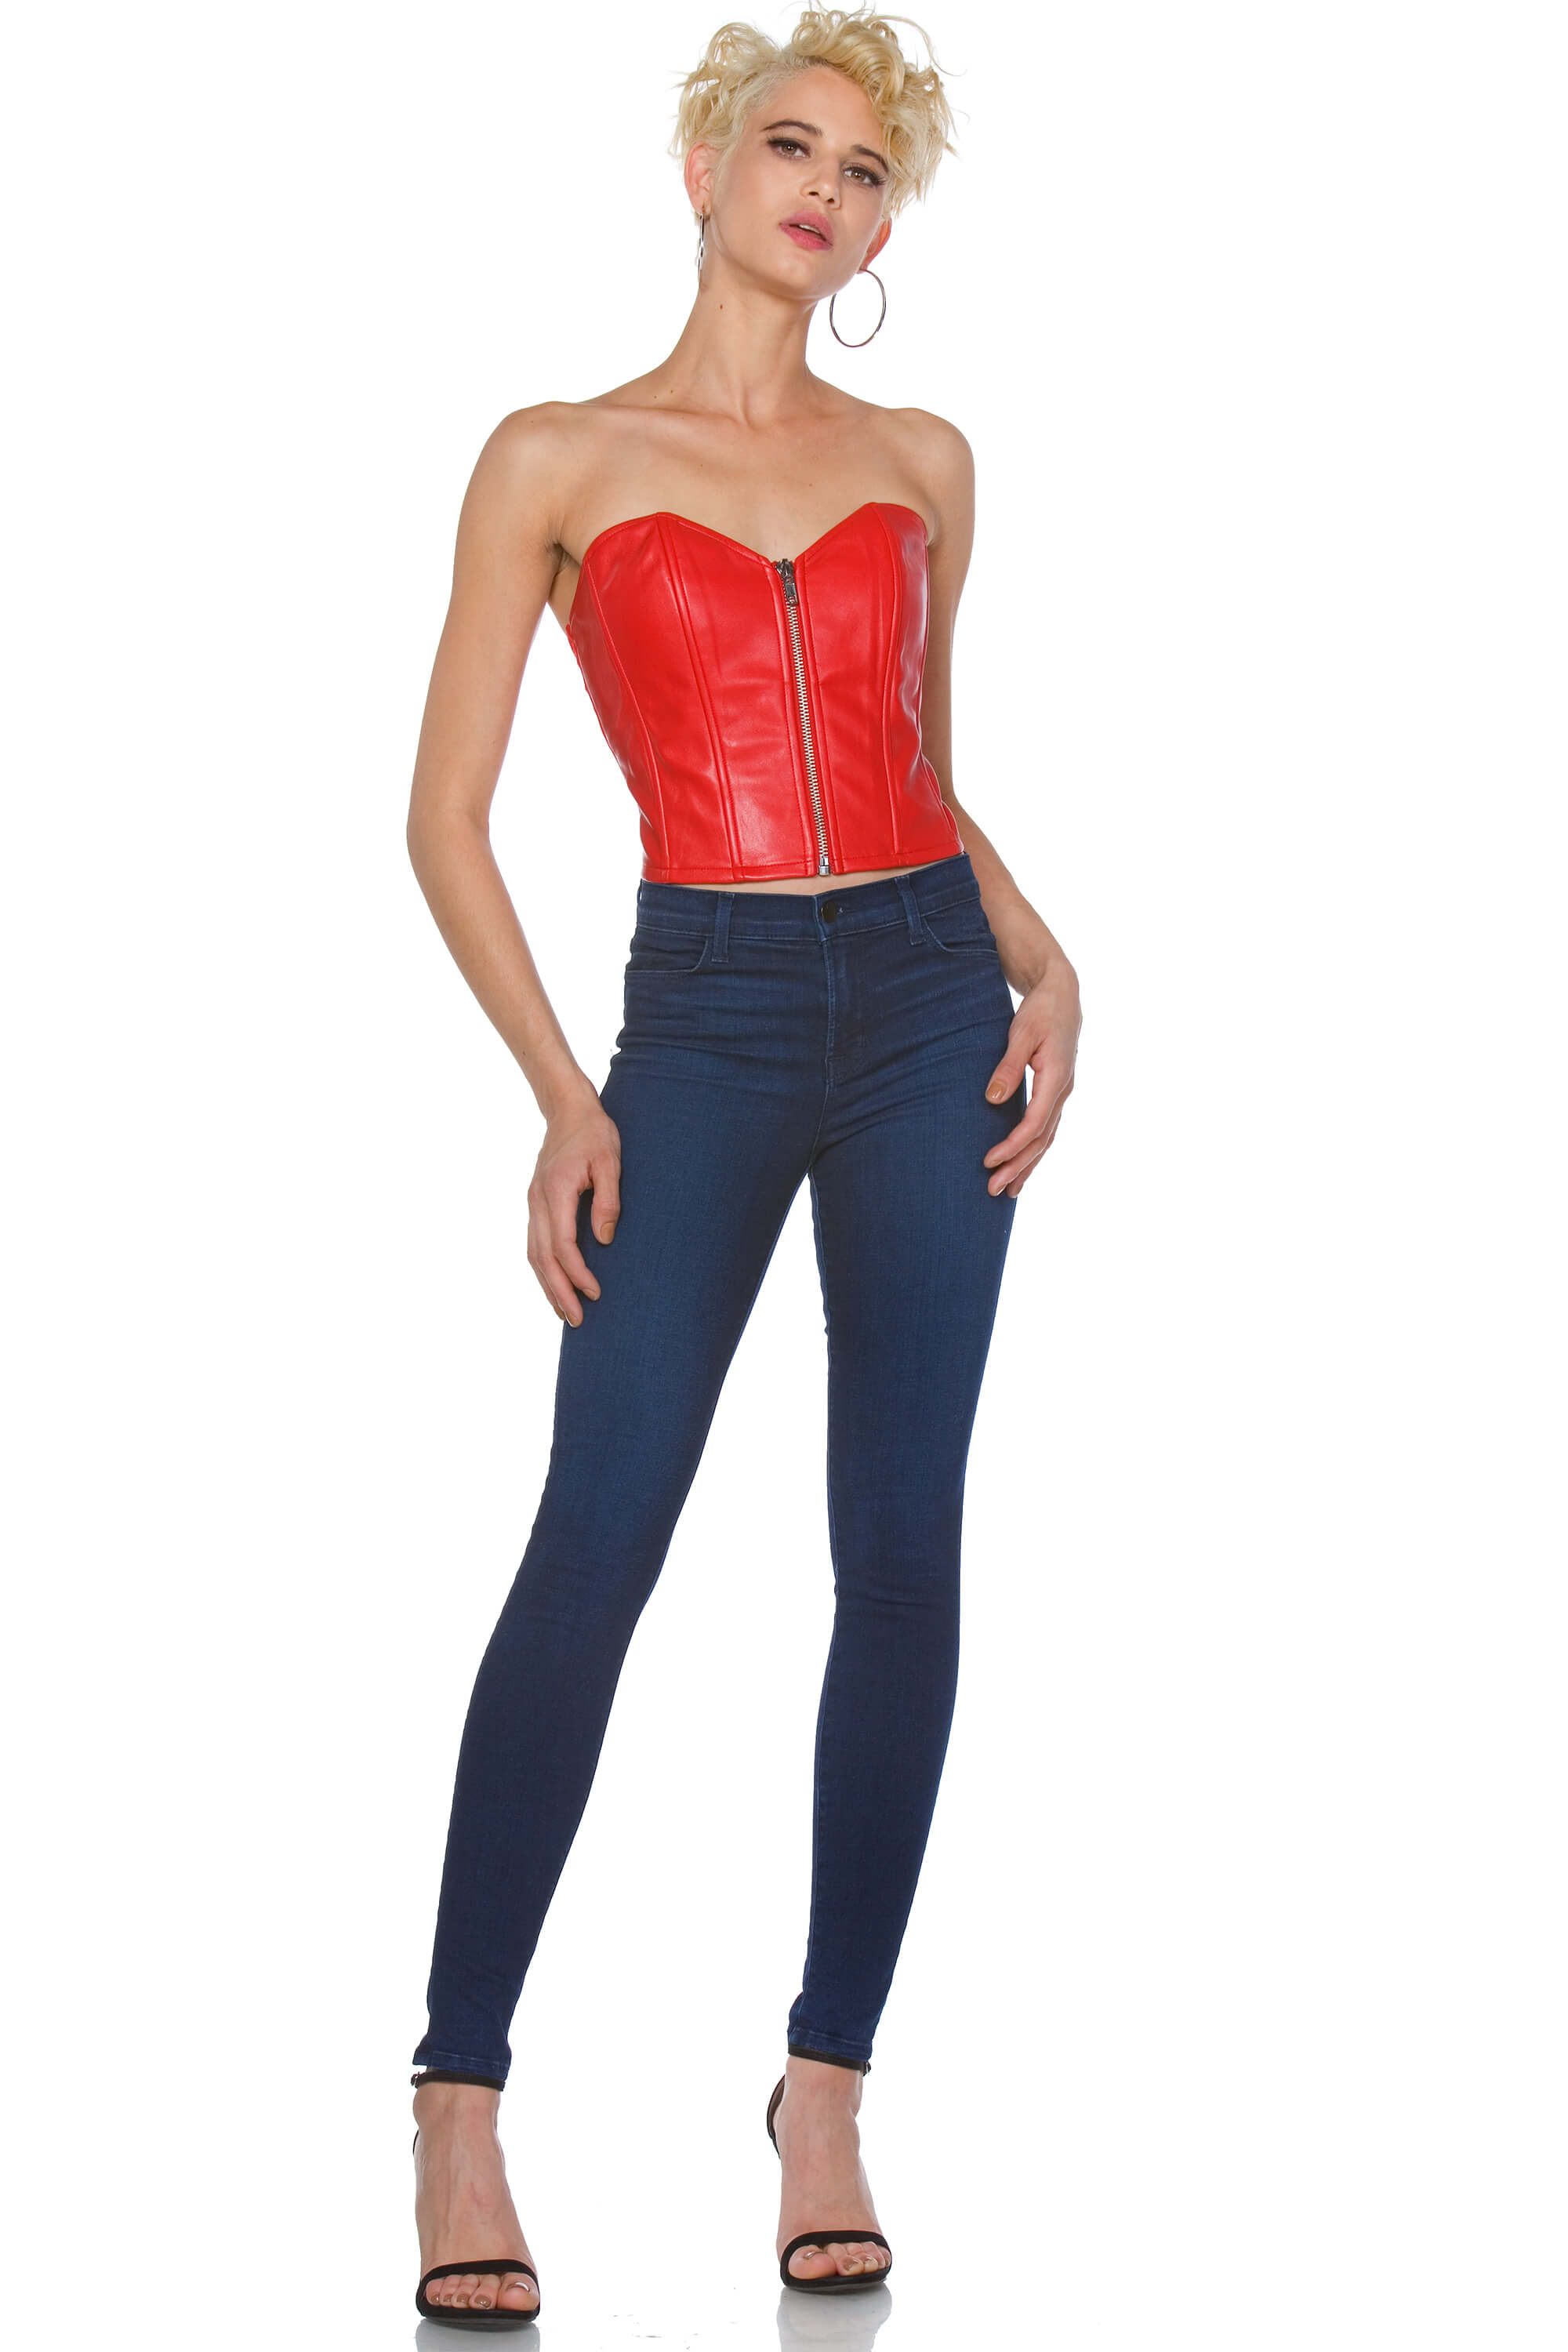 Rini Cropped Vegan Leather Bustier for Women